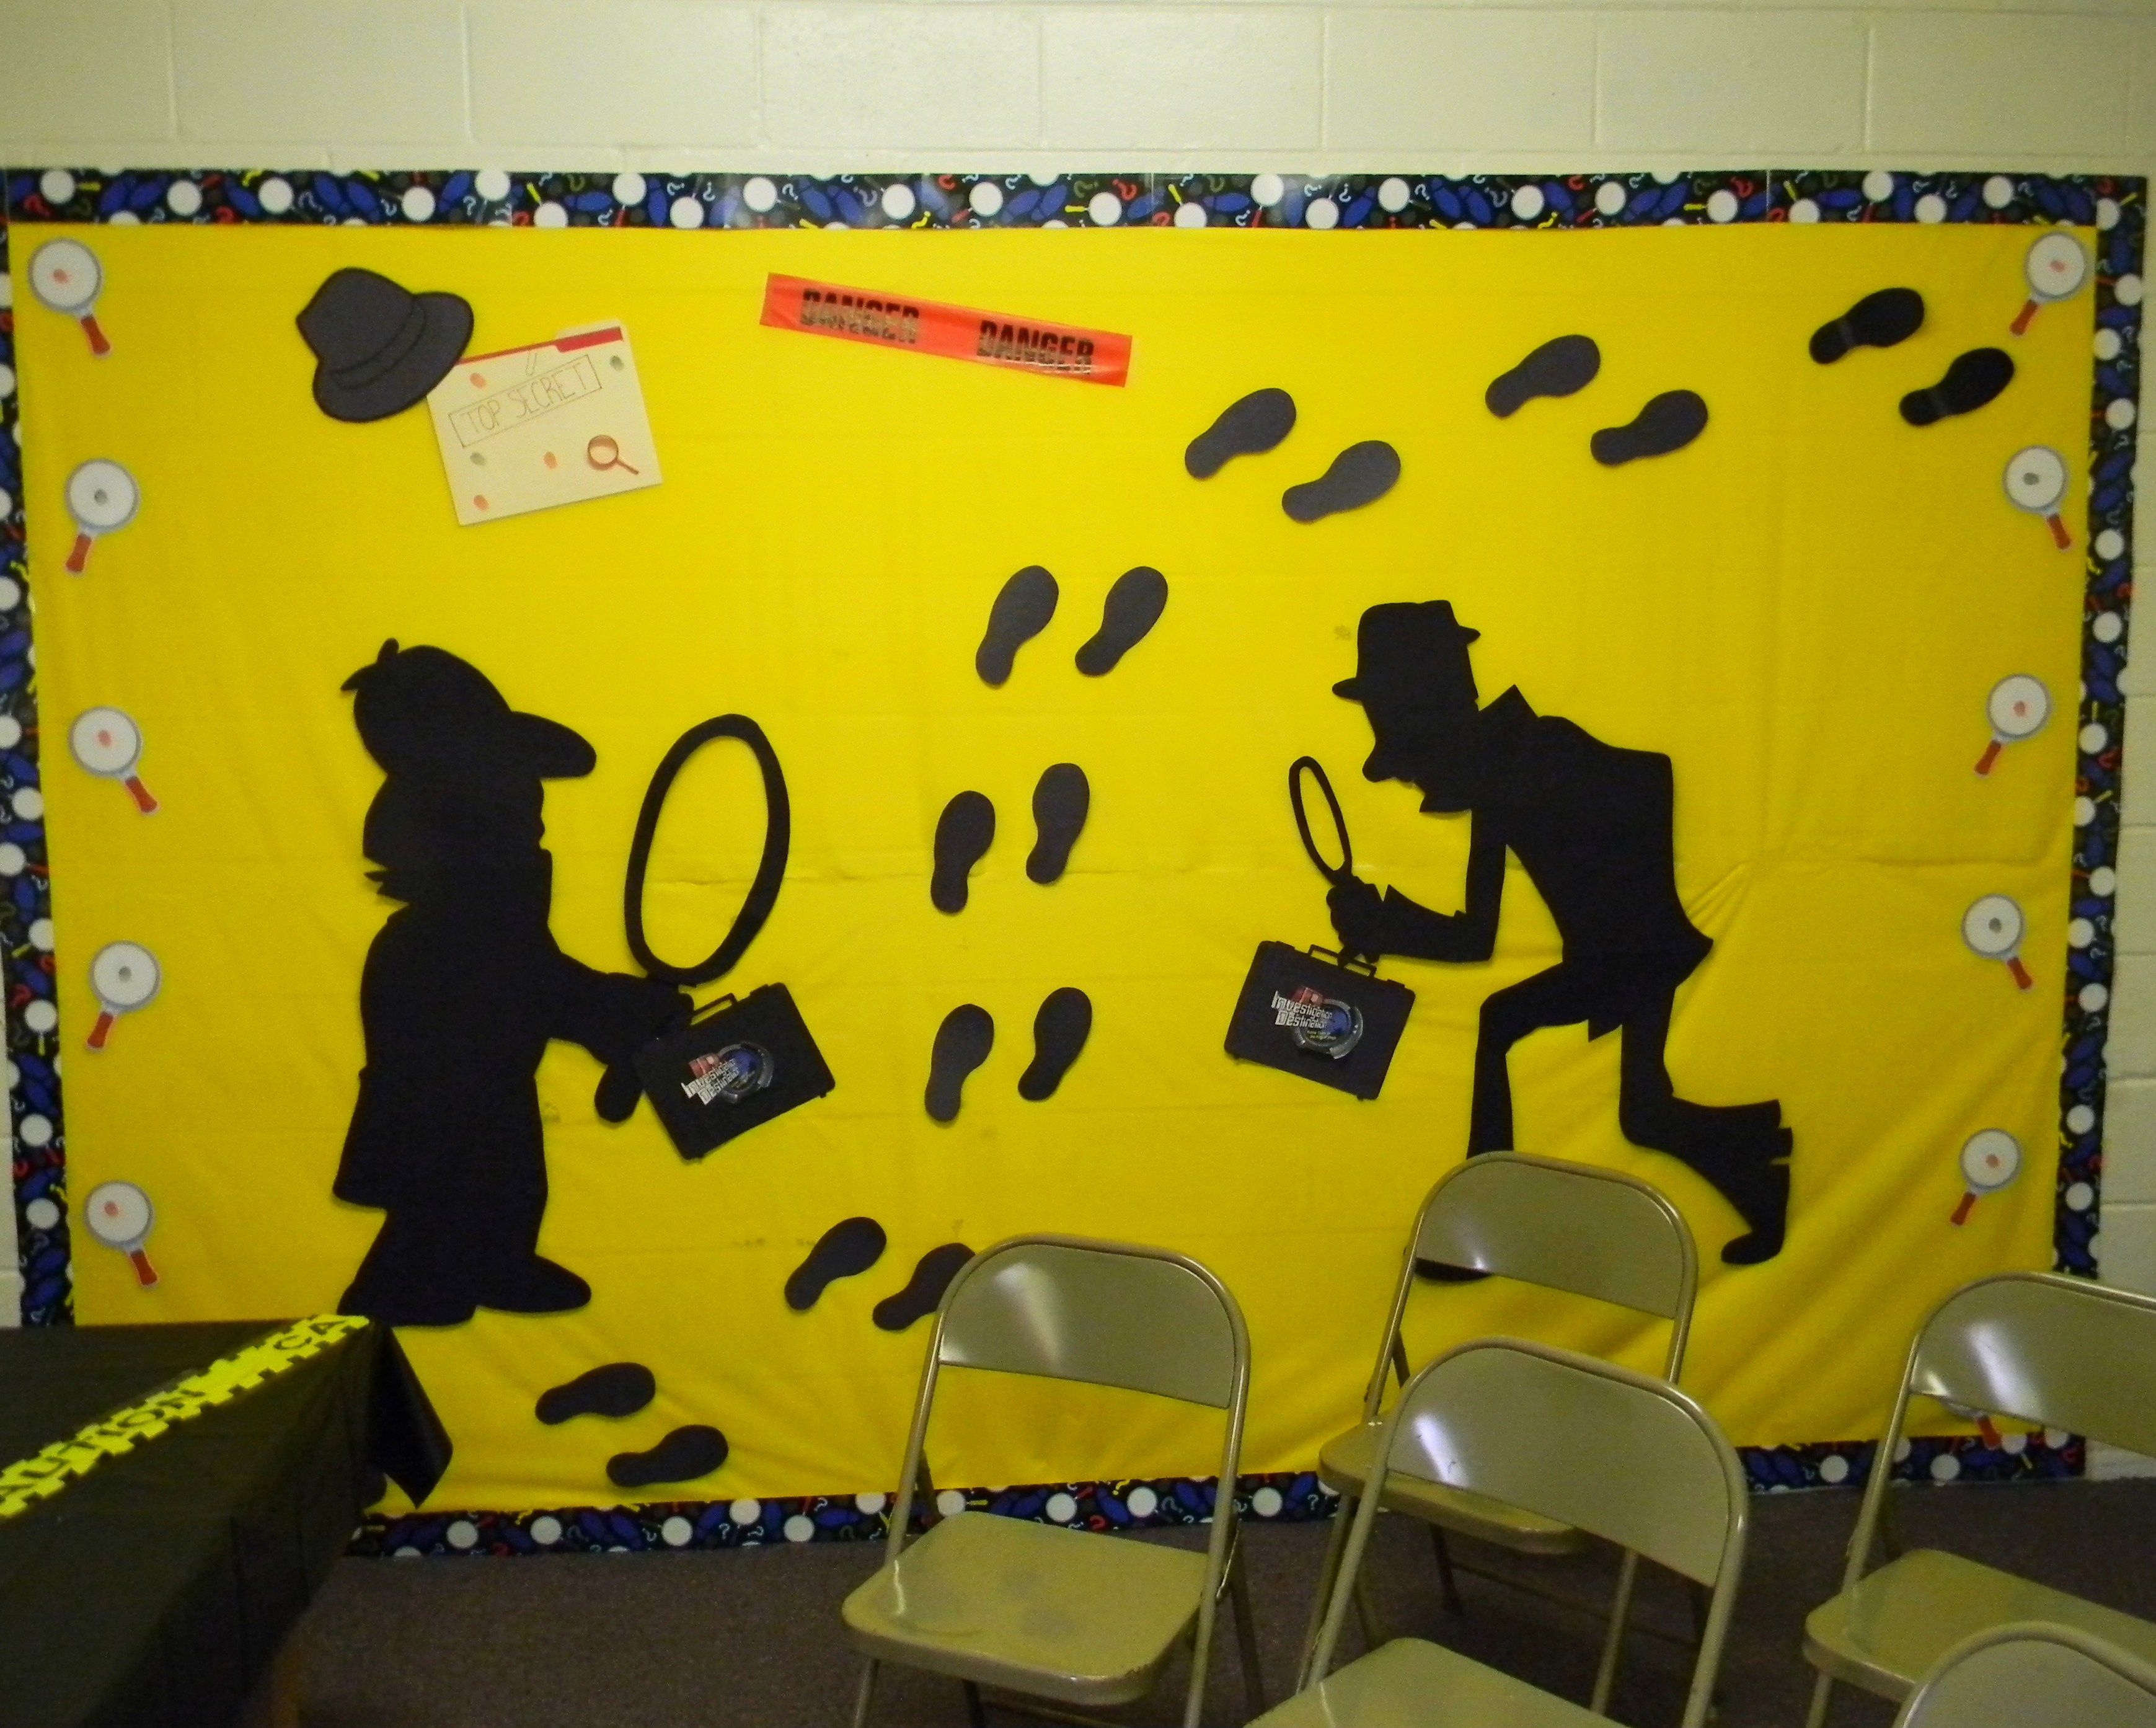 Spy Theme Decorations Footprints Magnifying Glasses